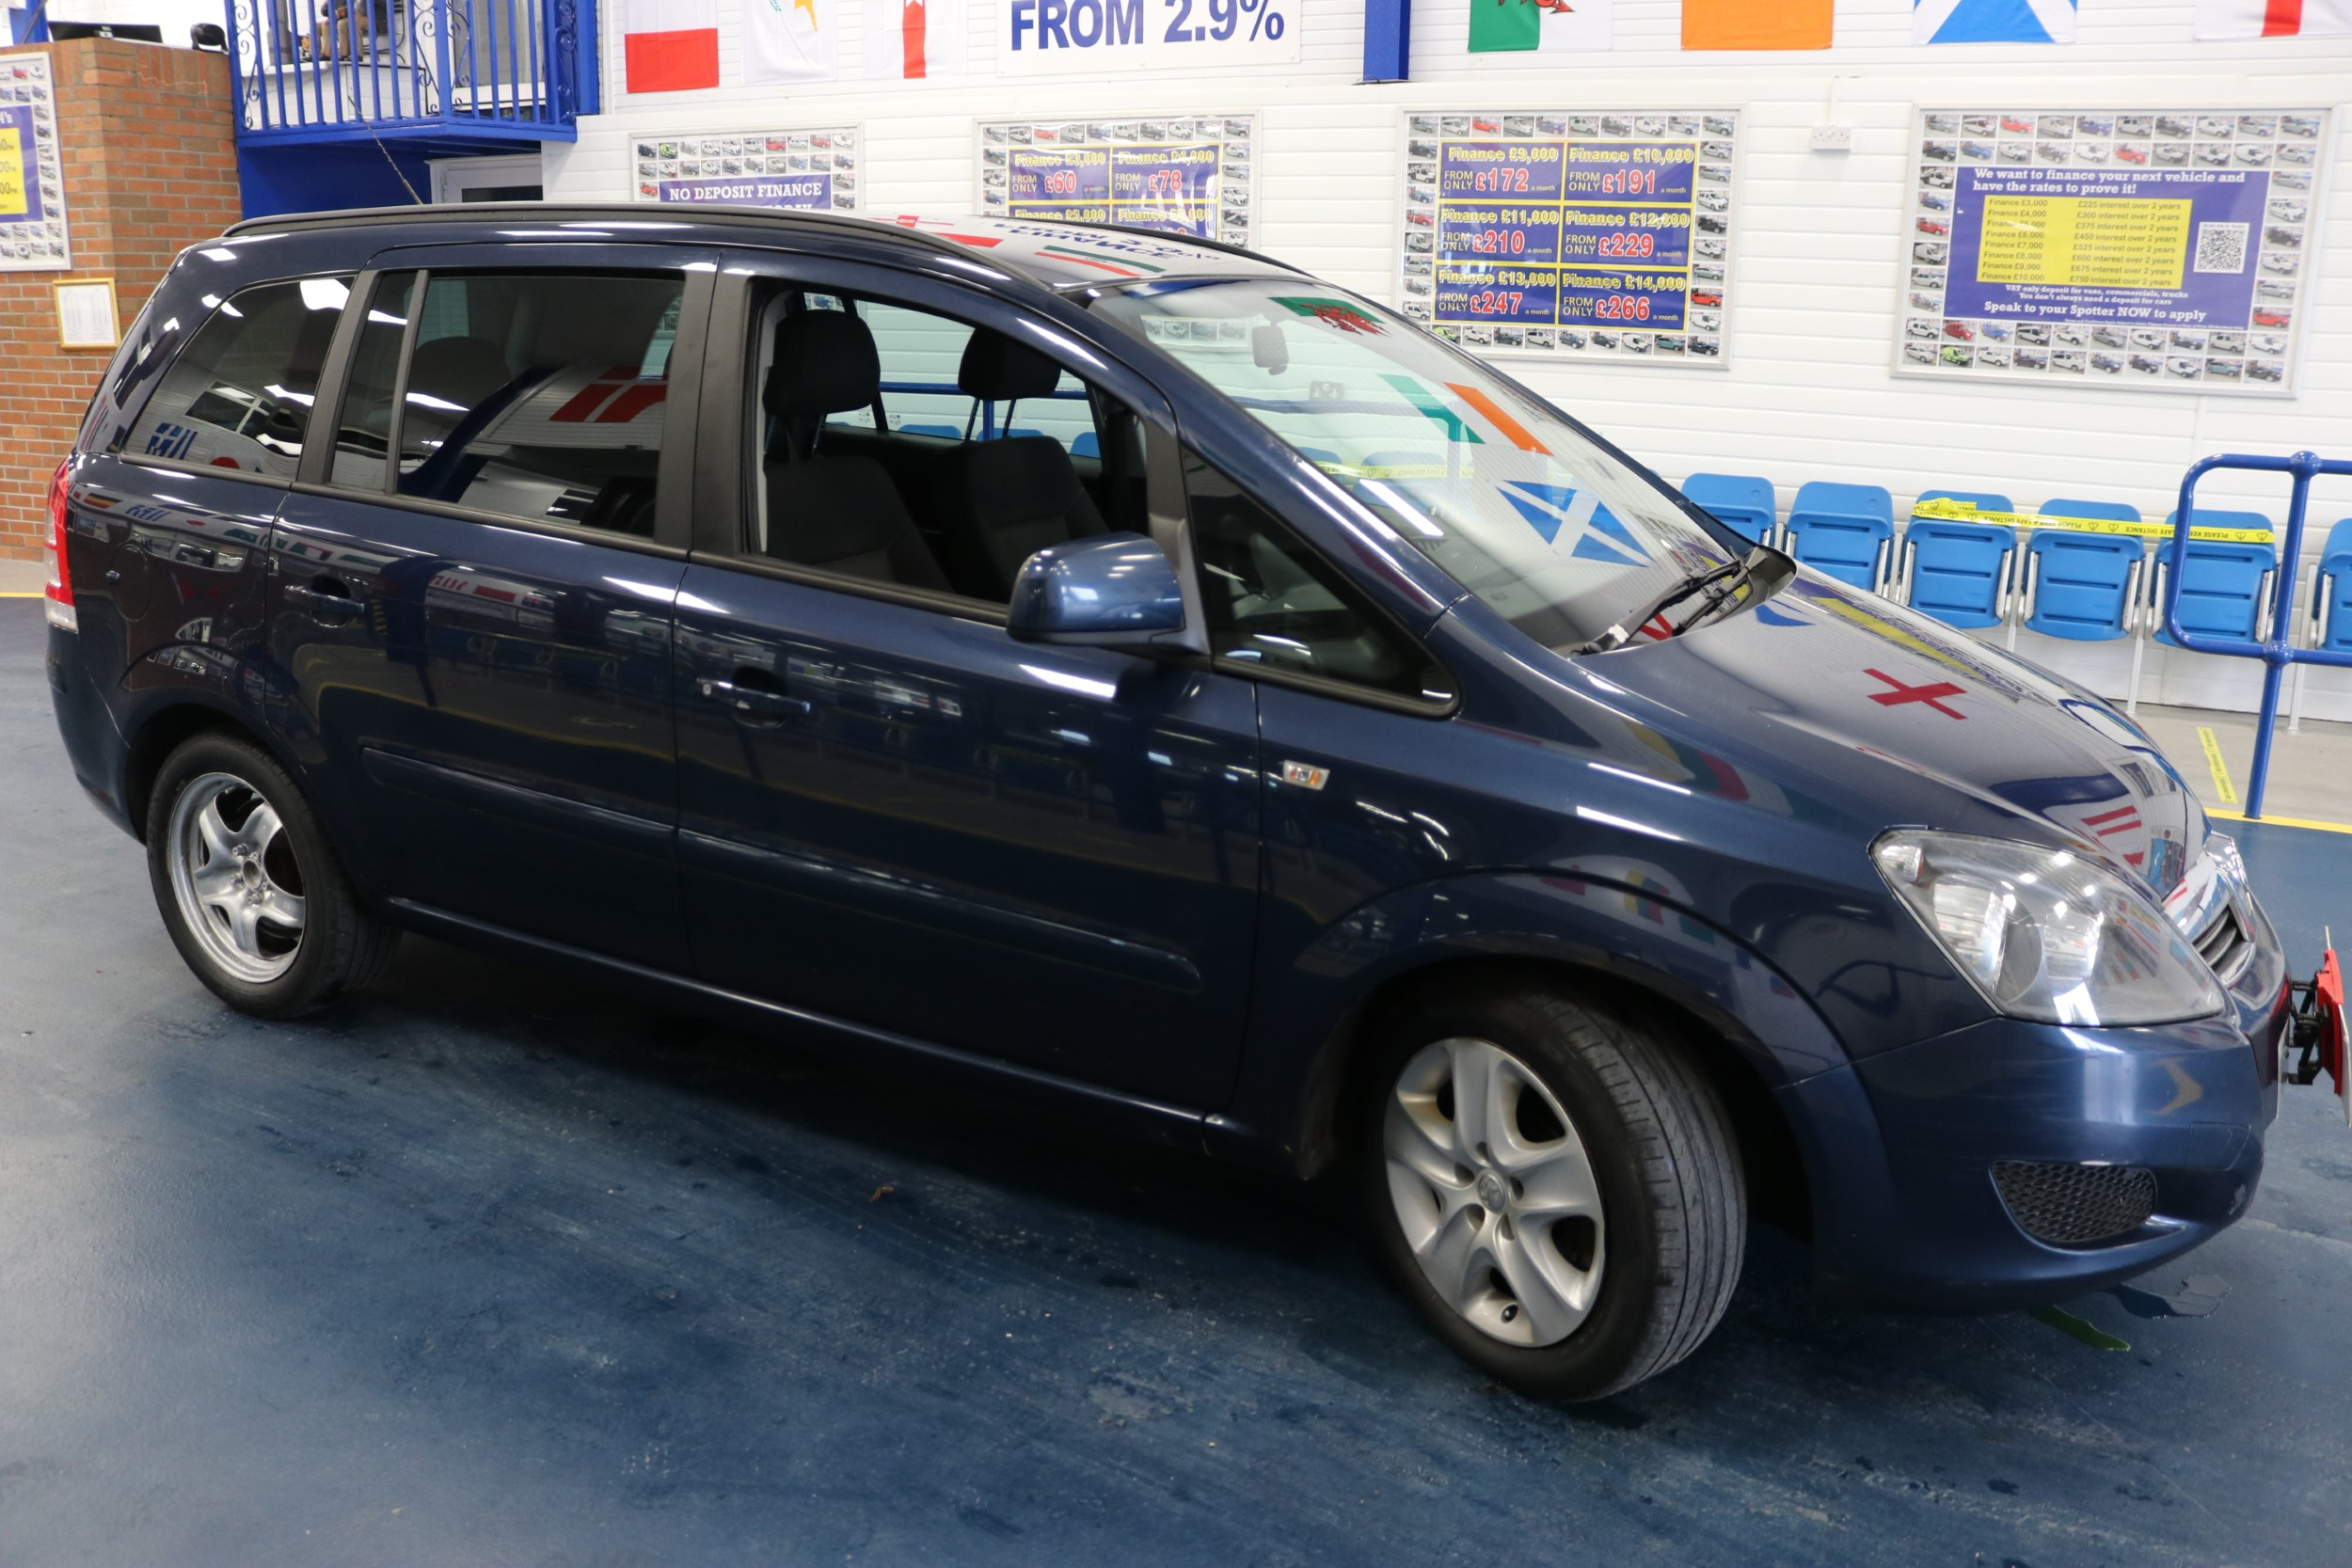 VAUXHALL ZAFIRA EXCLUSIVE NAV 1.7CDTI 125PS 7 SEAT MPV FOR SALE